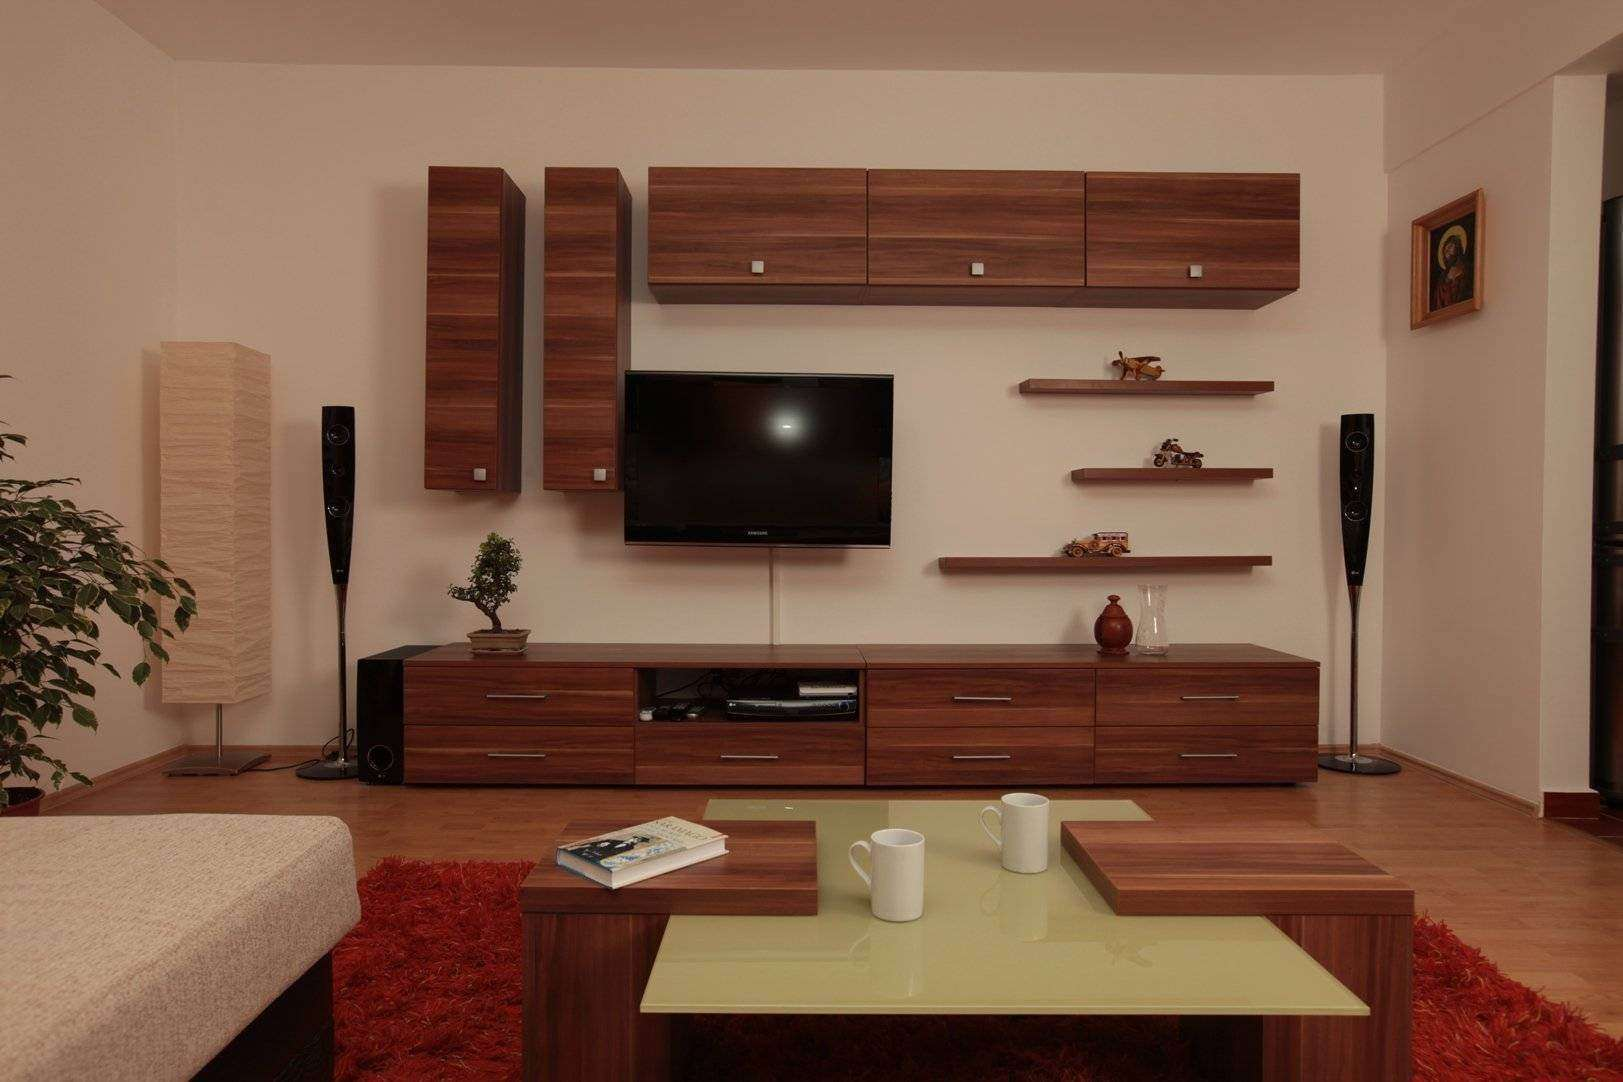 <a href=&quot;mobilier living modern la comanda&quot;>mobila living moderna<img src='http://www.unican.ro/wp-content/themes/vita/img/dreapta.png' class='pull-right hidden-xs' style='margin-right:-10px;margin-top:-10px; max-height:41px'></a>